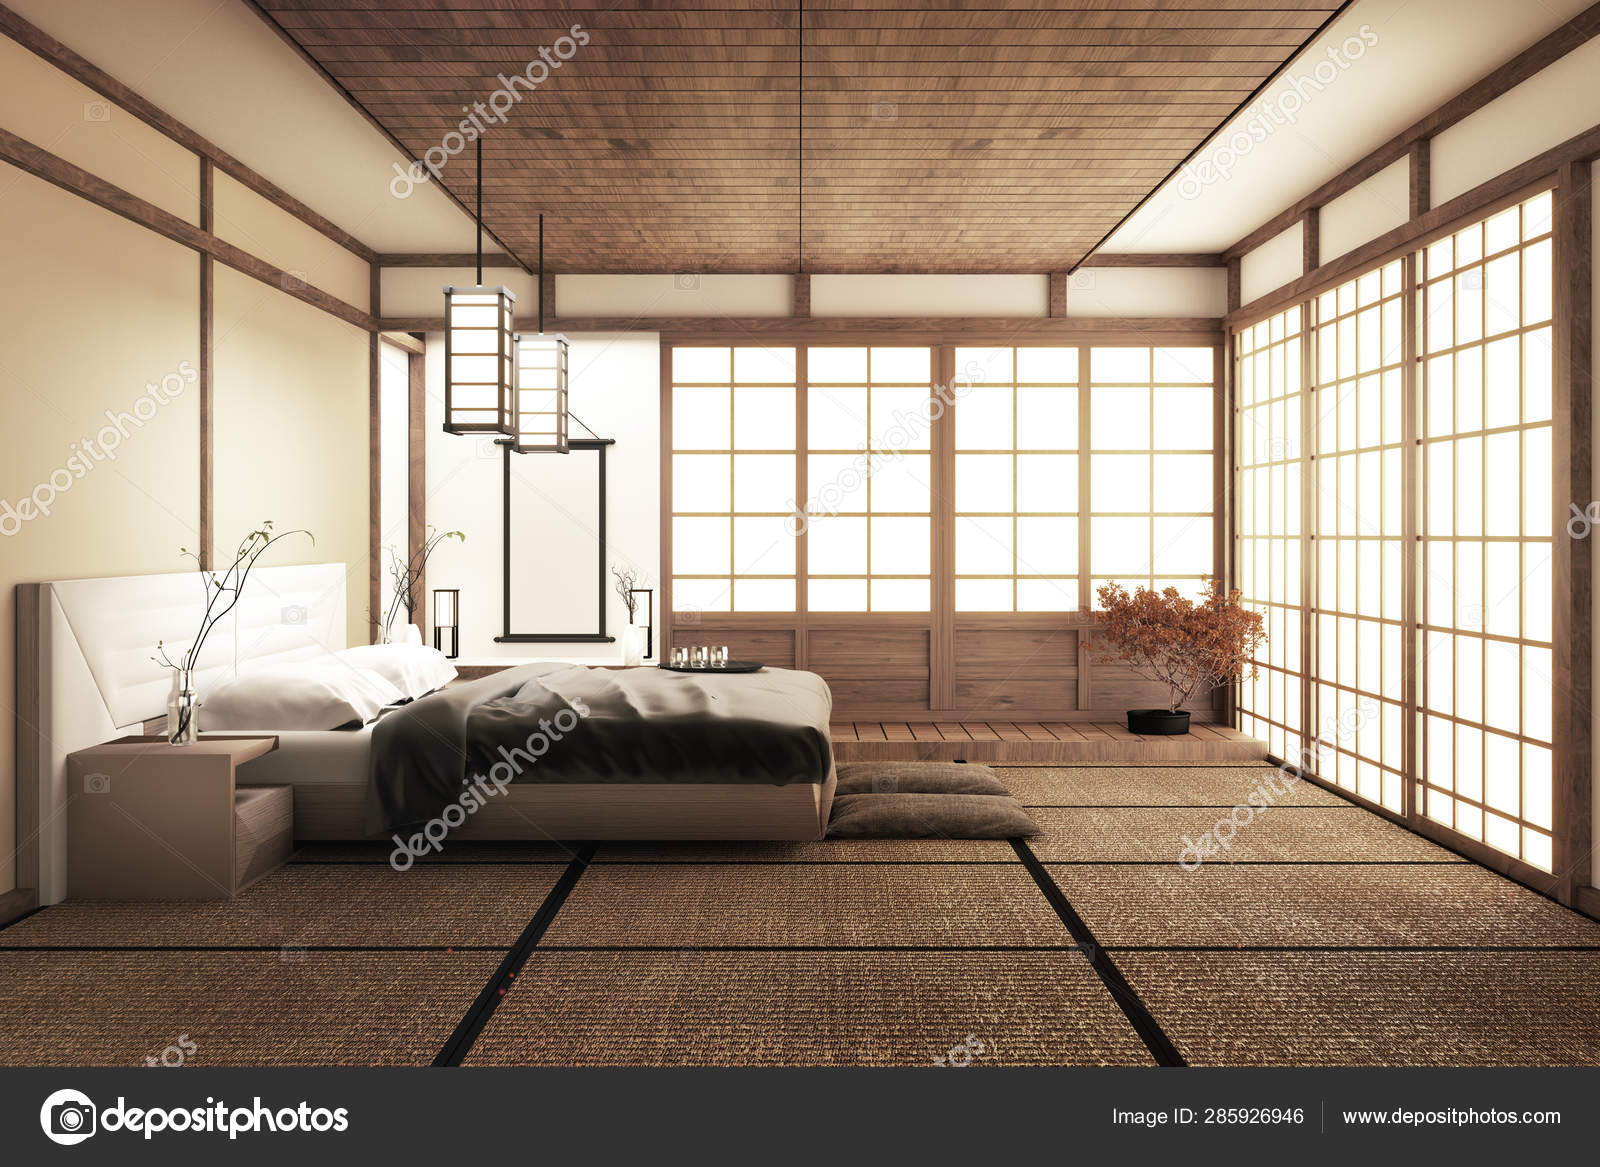 Interior Luxury Modern Japanese Style Bedroom Mock Up Designing Stock Photo C Minny0012011 Gmail Com 285926946